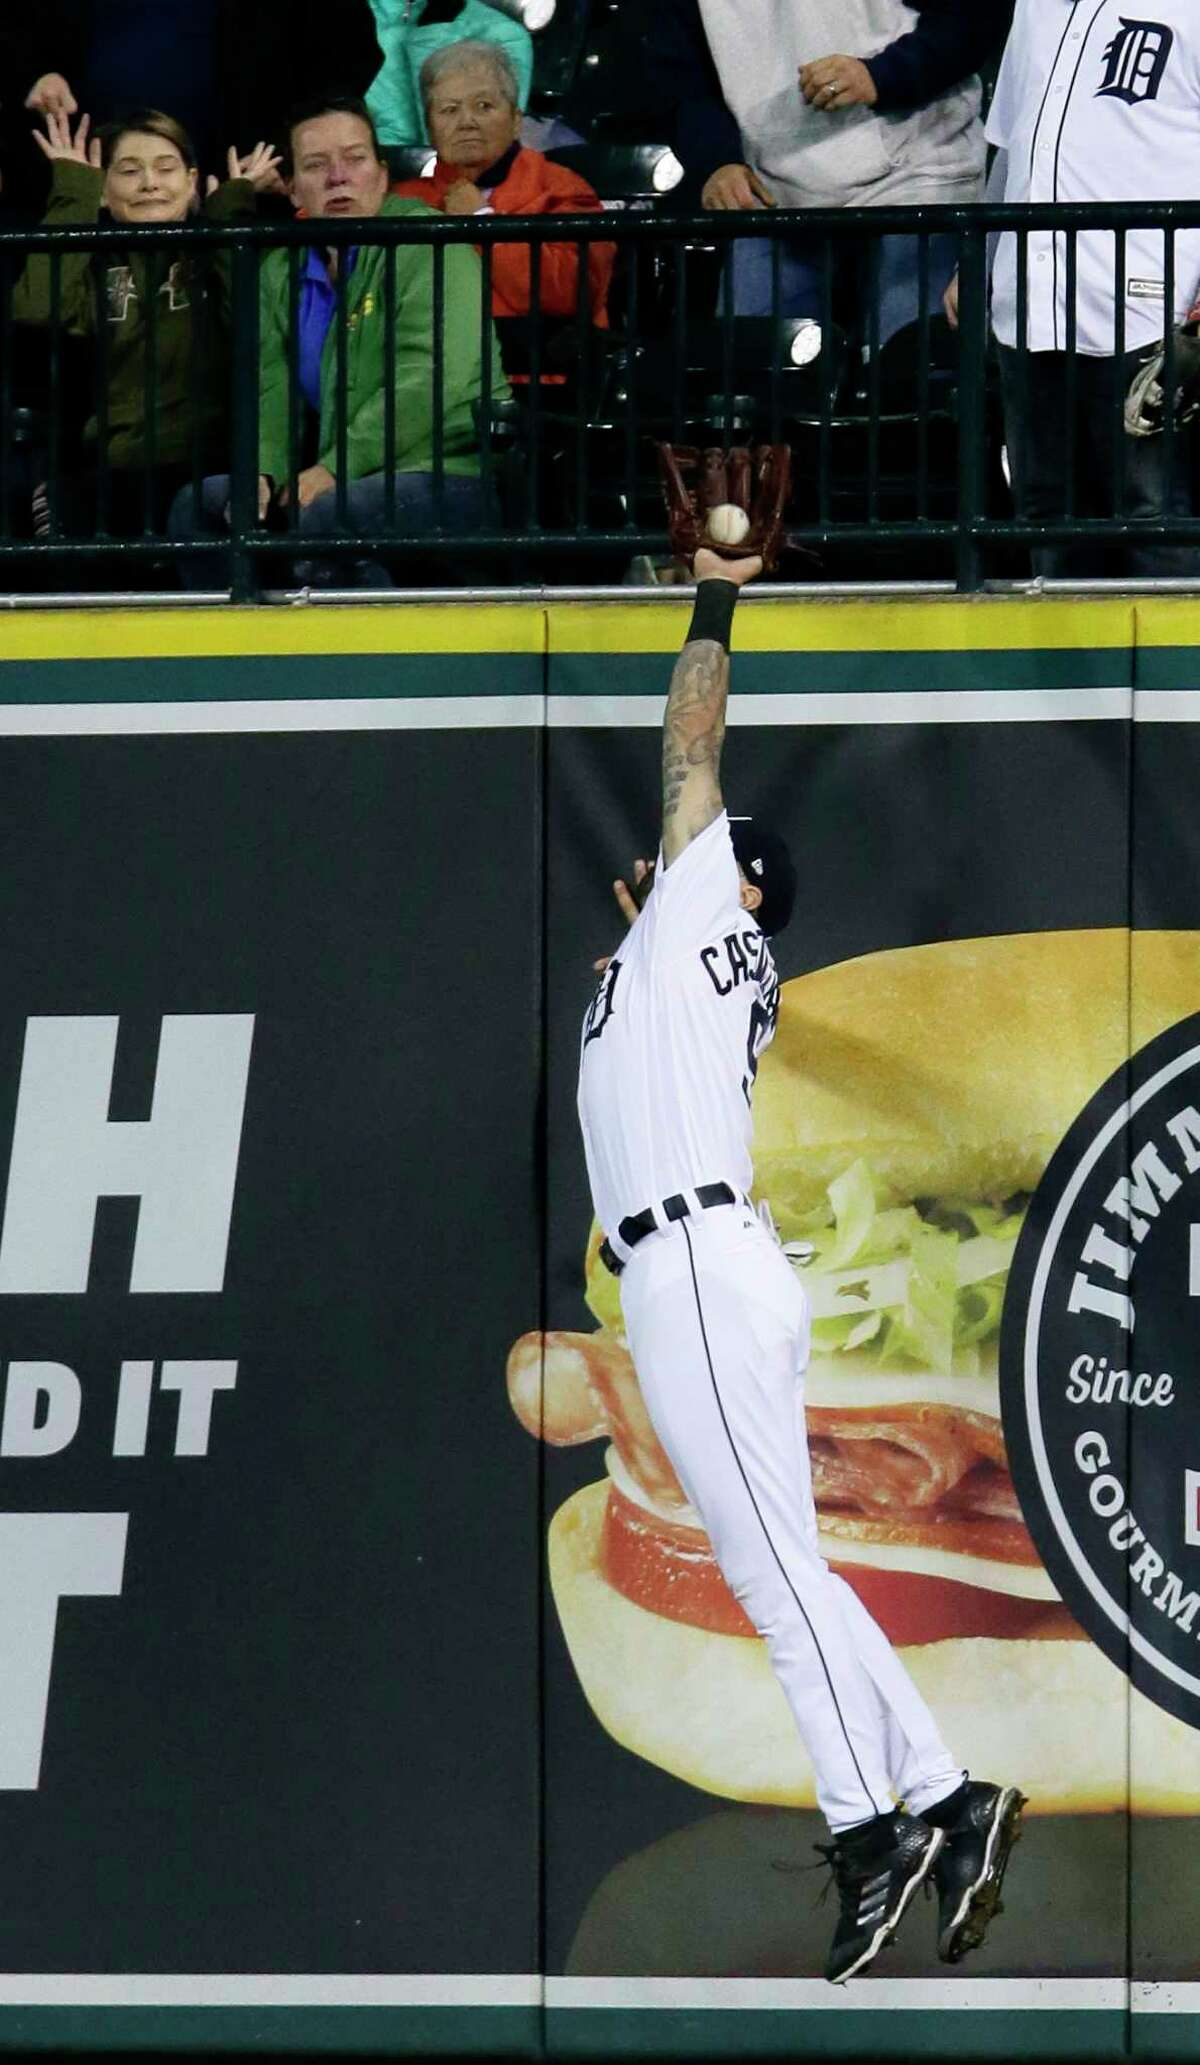 Detroit Tigers right fielder Nicholas Castellanos catches a fly ball hit by Houston Astros' Marwin Gonzalez during the eighth inning of a baseball game, Monday, Sept. 10, 2018, in Detroit. (AP Photo/Duane Burleson)